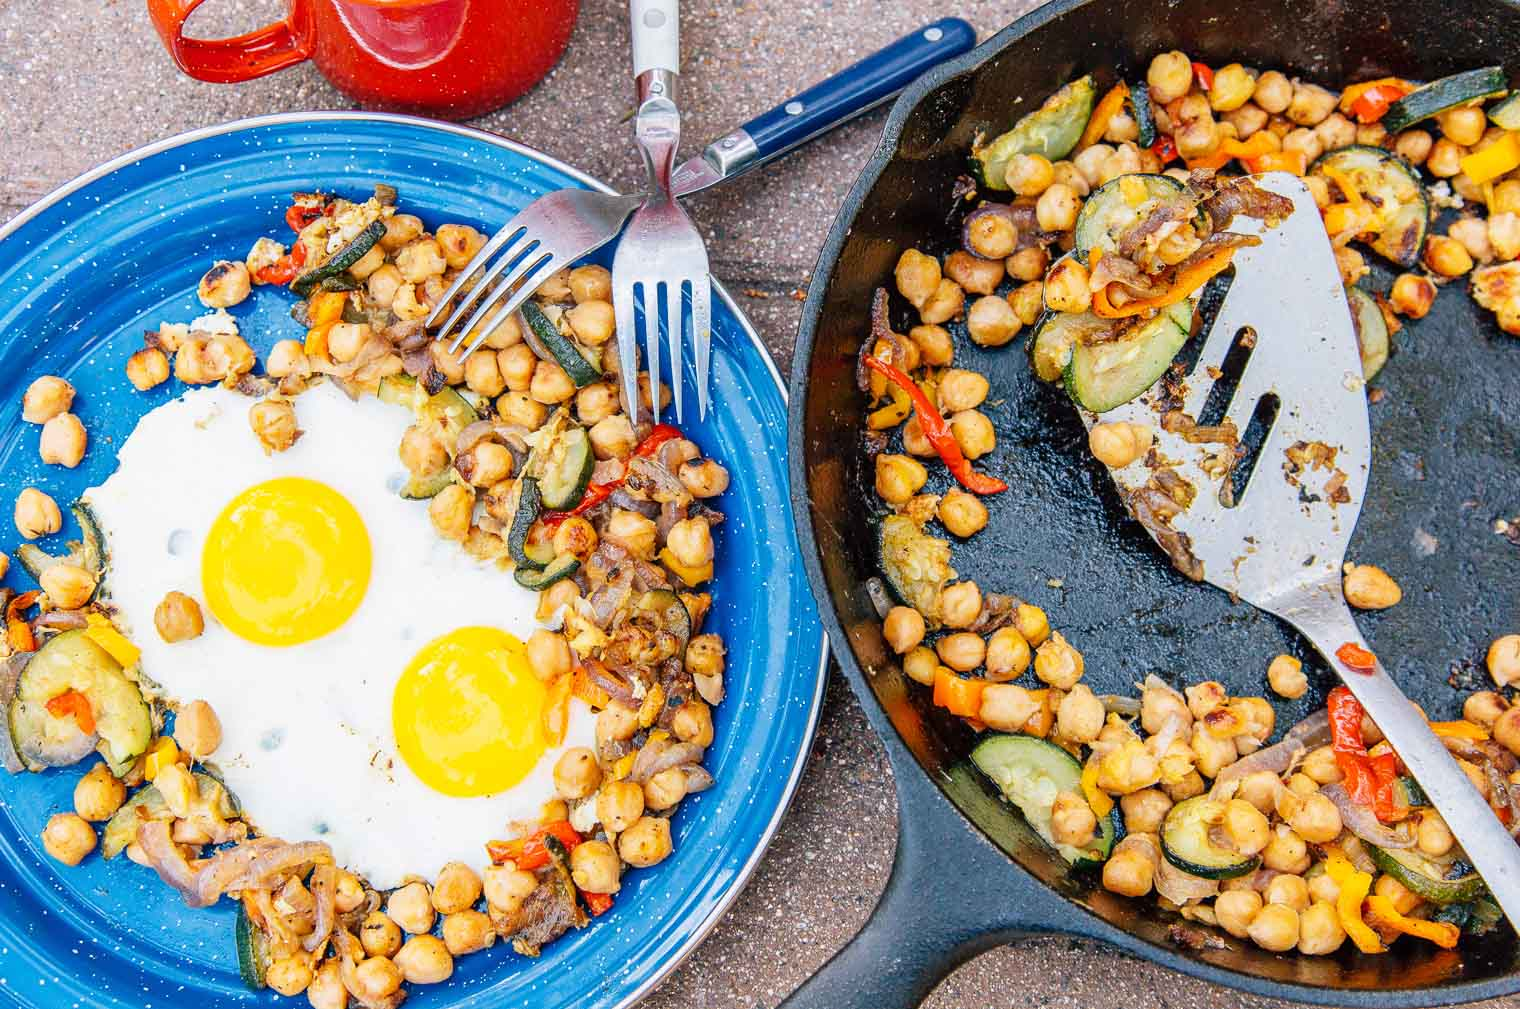 Cast iron skillet with chickpeas next to a blue camping plate with fried eggs